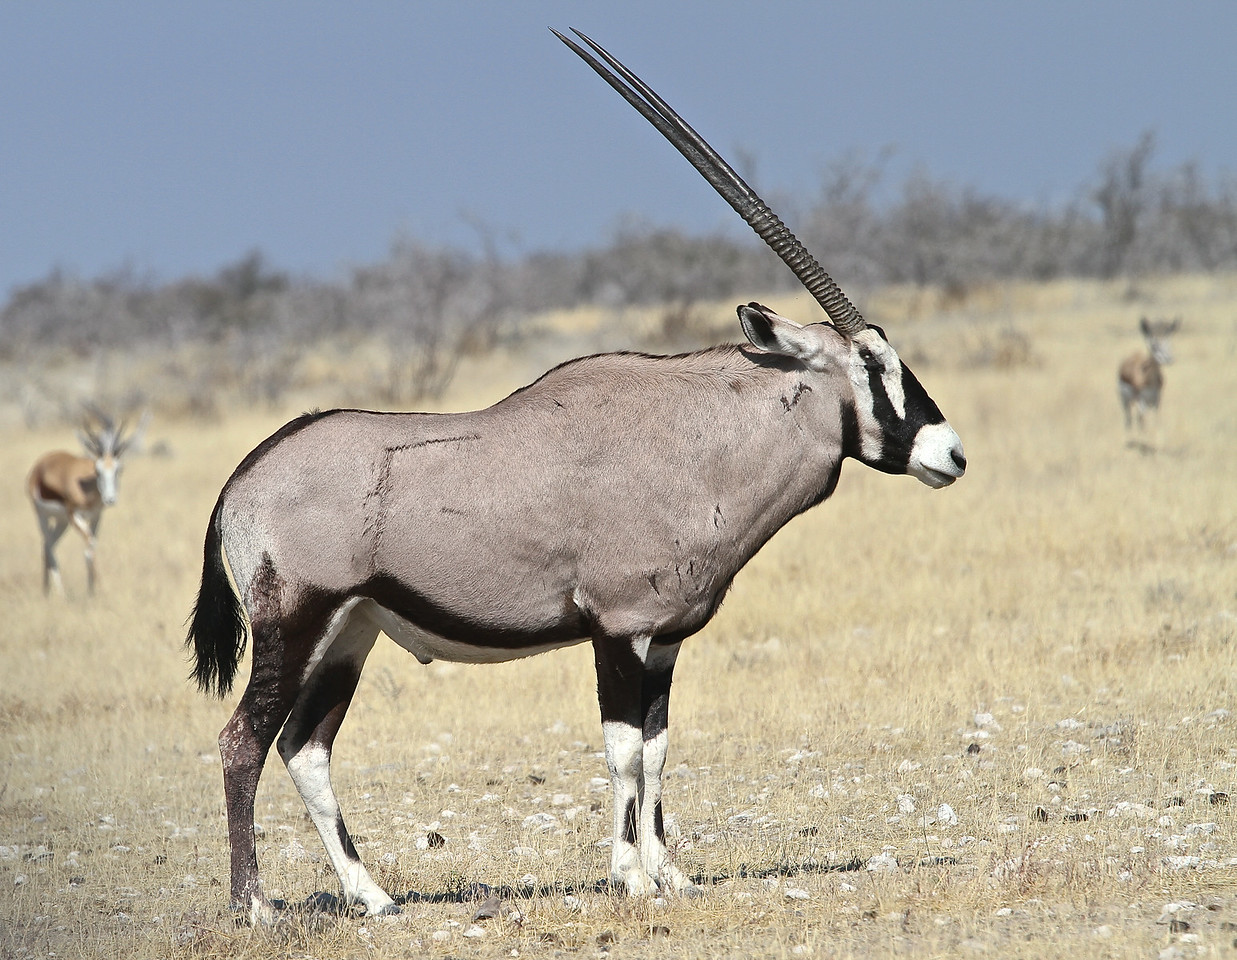 Male Gemsbok with scars and horns